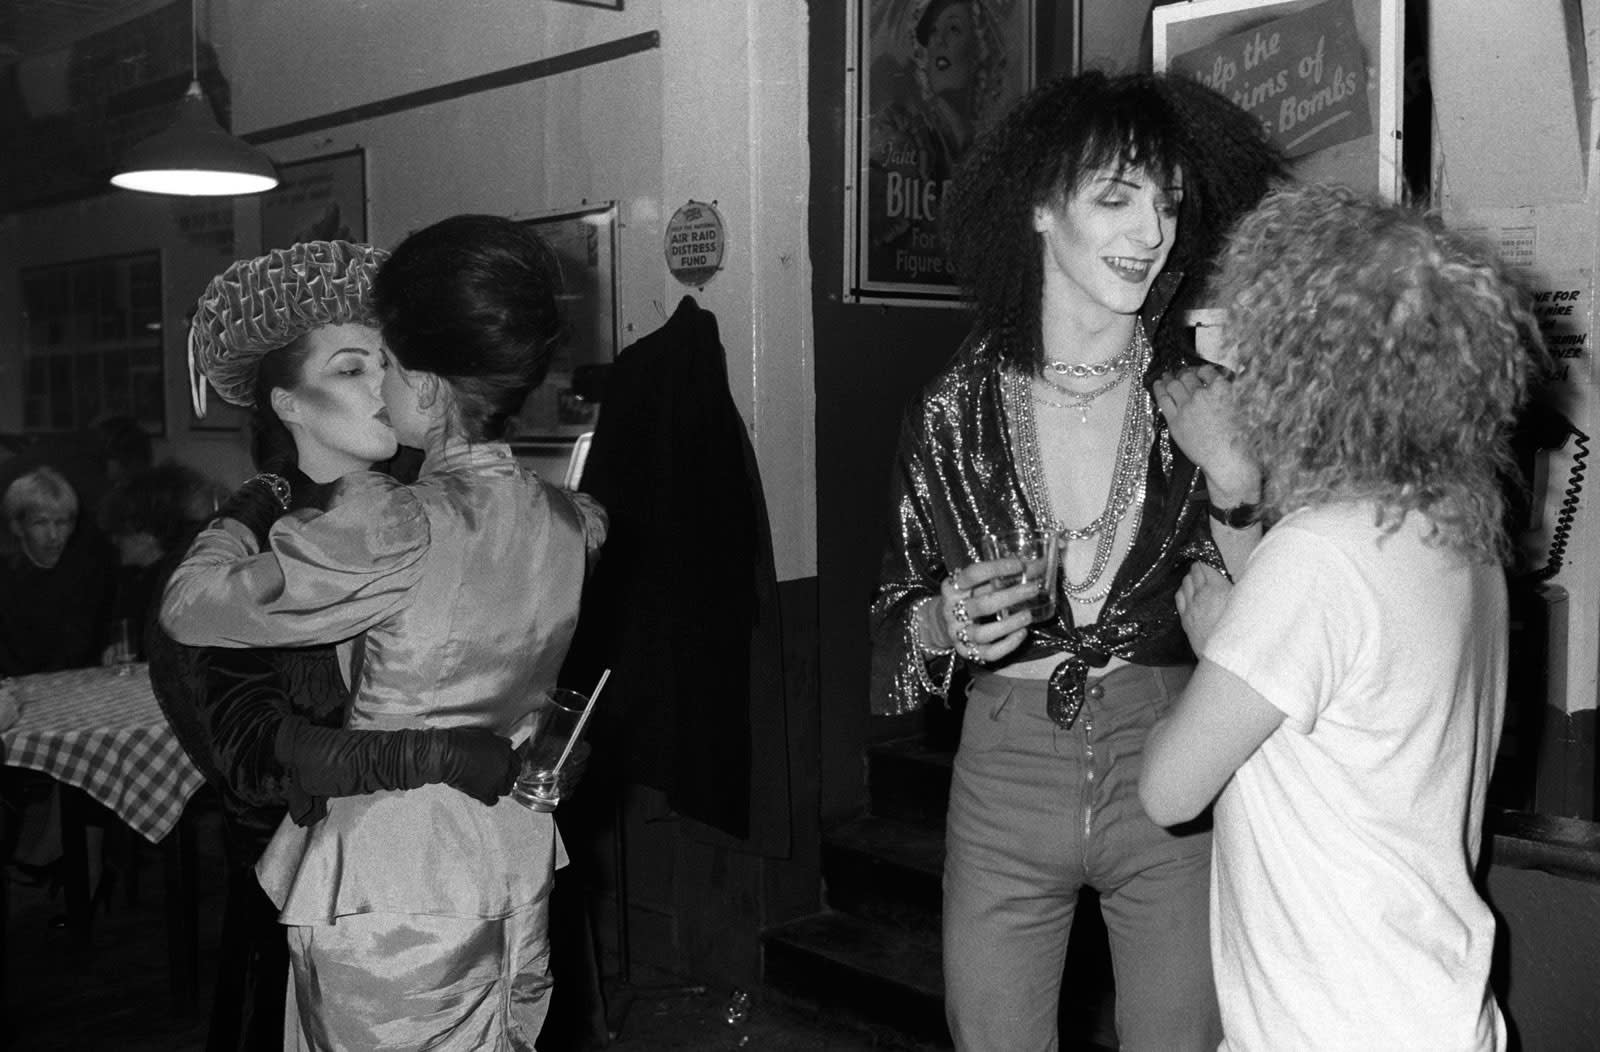 Homer Sykes, Group of friends II at the Blitz Club, Covent Garden, London, 1980